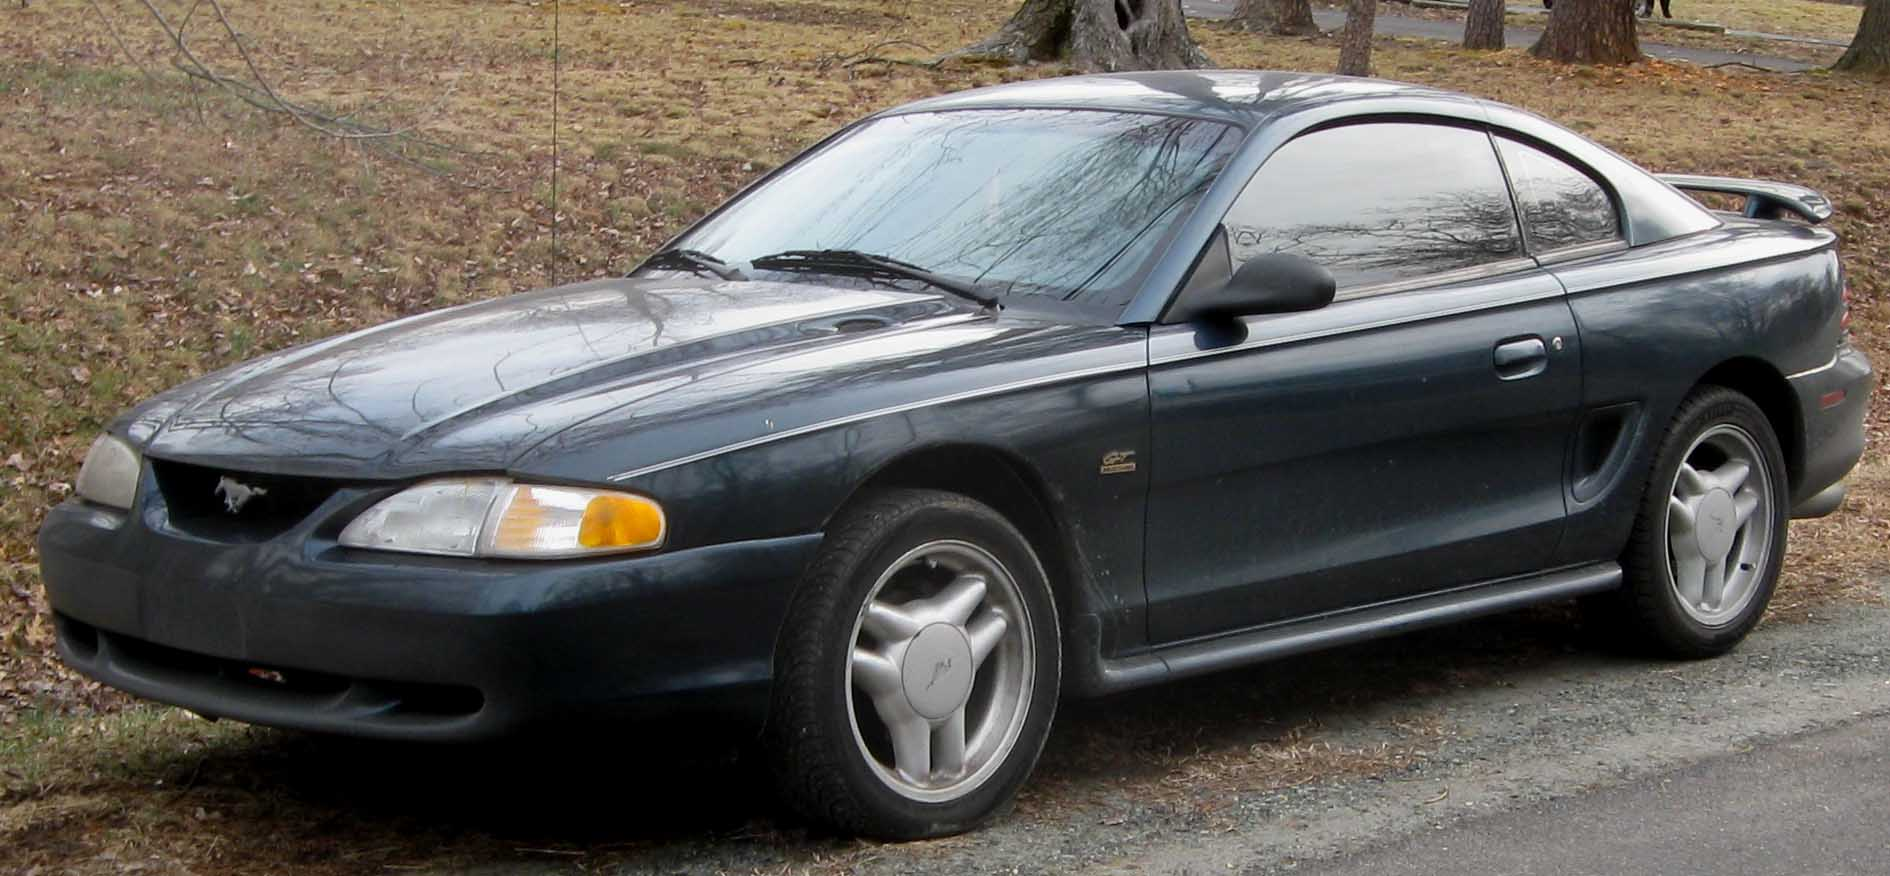 File96 98 ford mustang gt coupe jpg